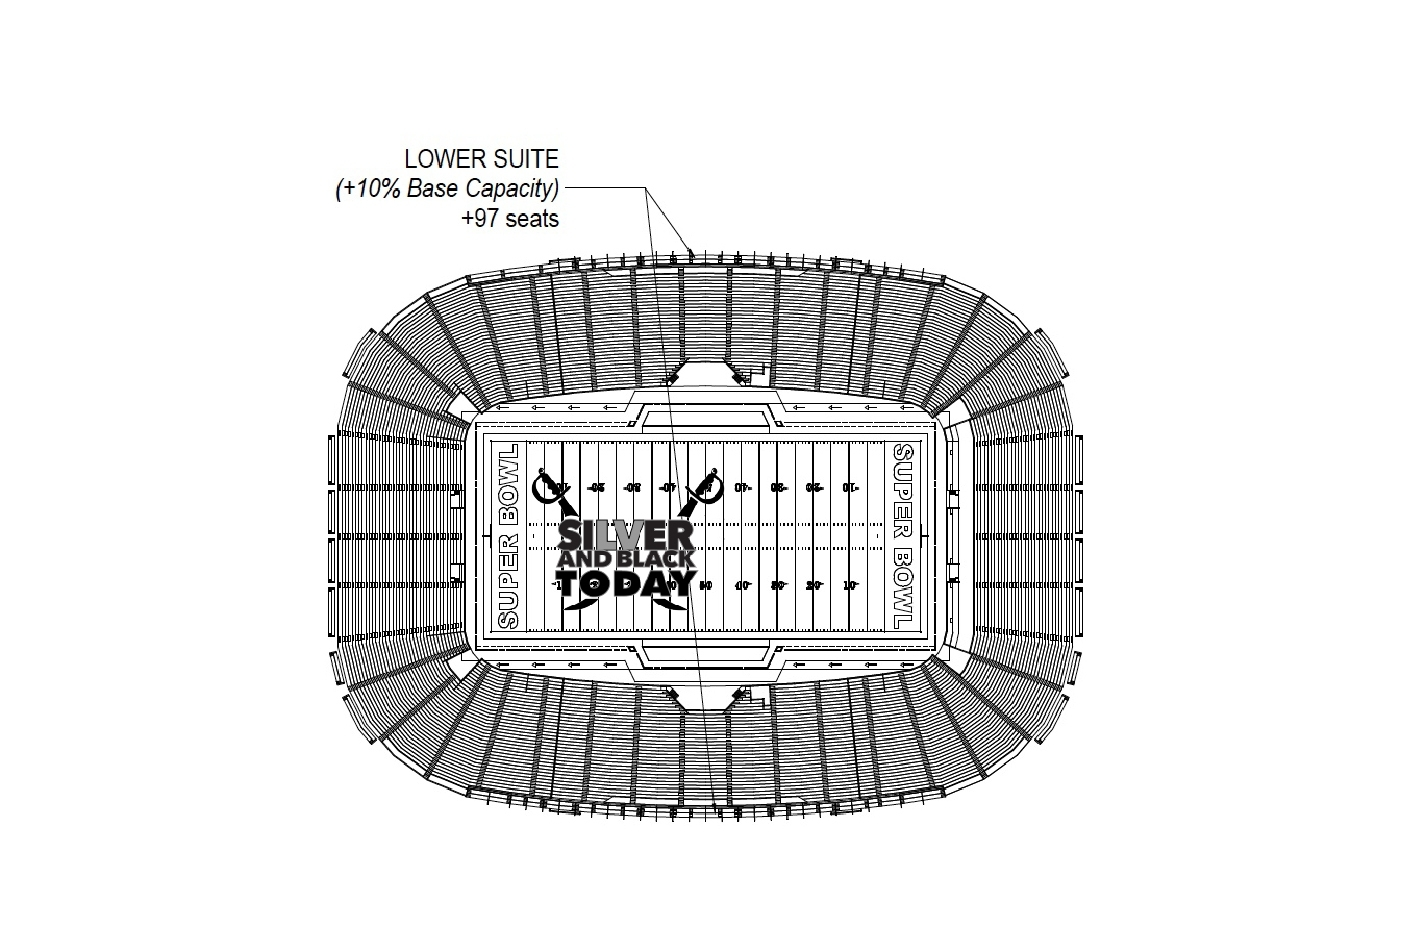 Exclusive: New Stadium Plans Reveal Super Bowl Configuration throughout Seating Capacity For Super Bowl